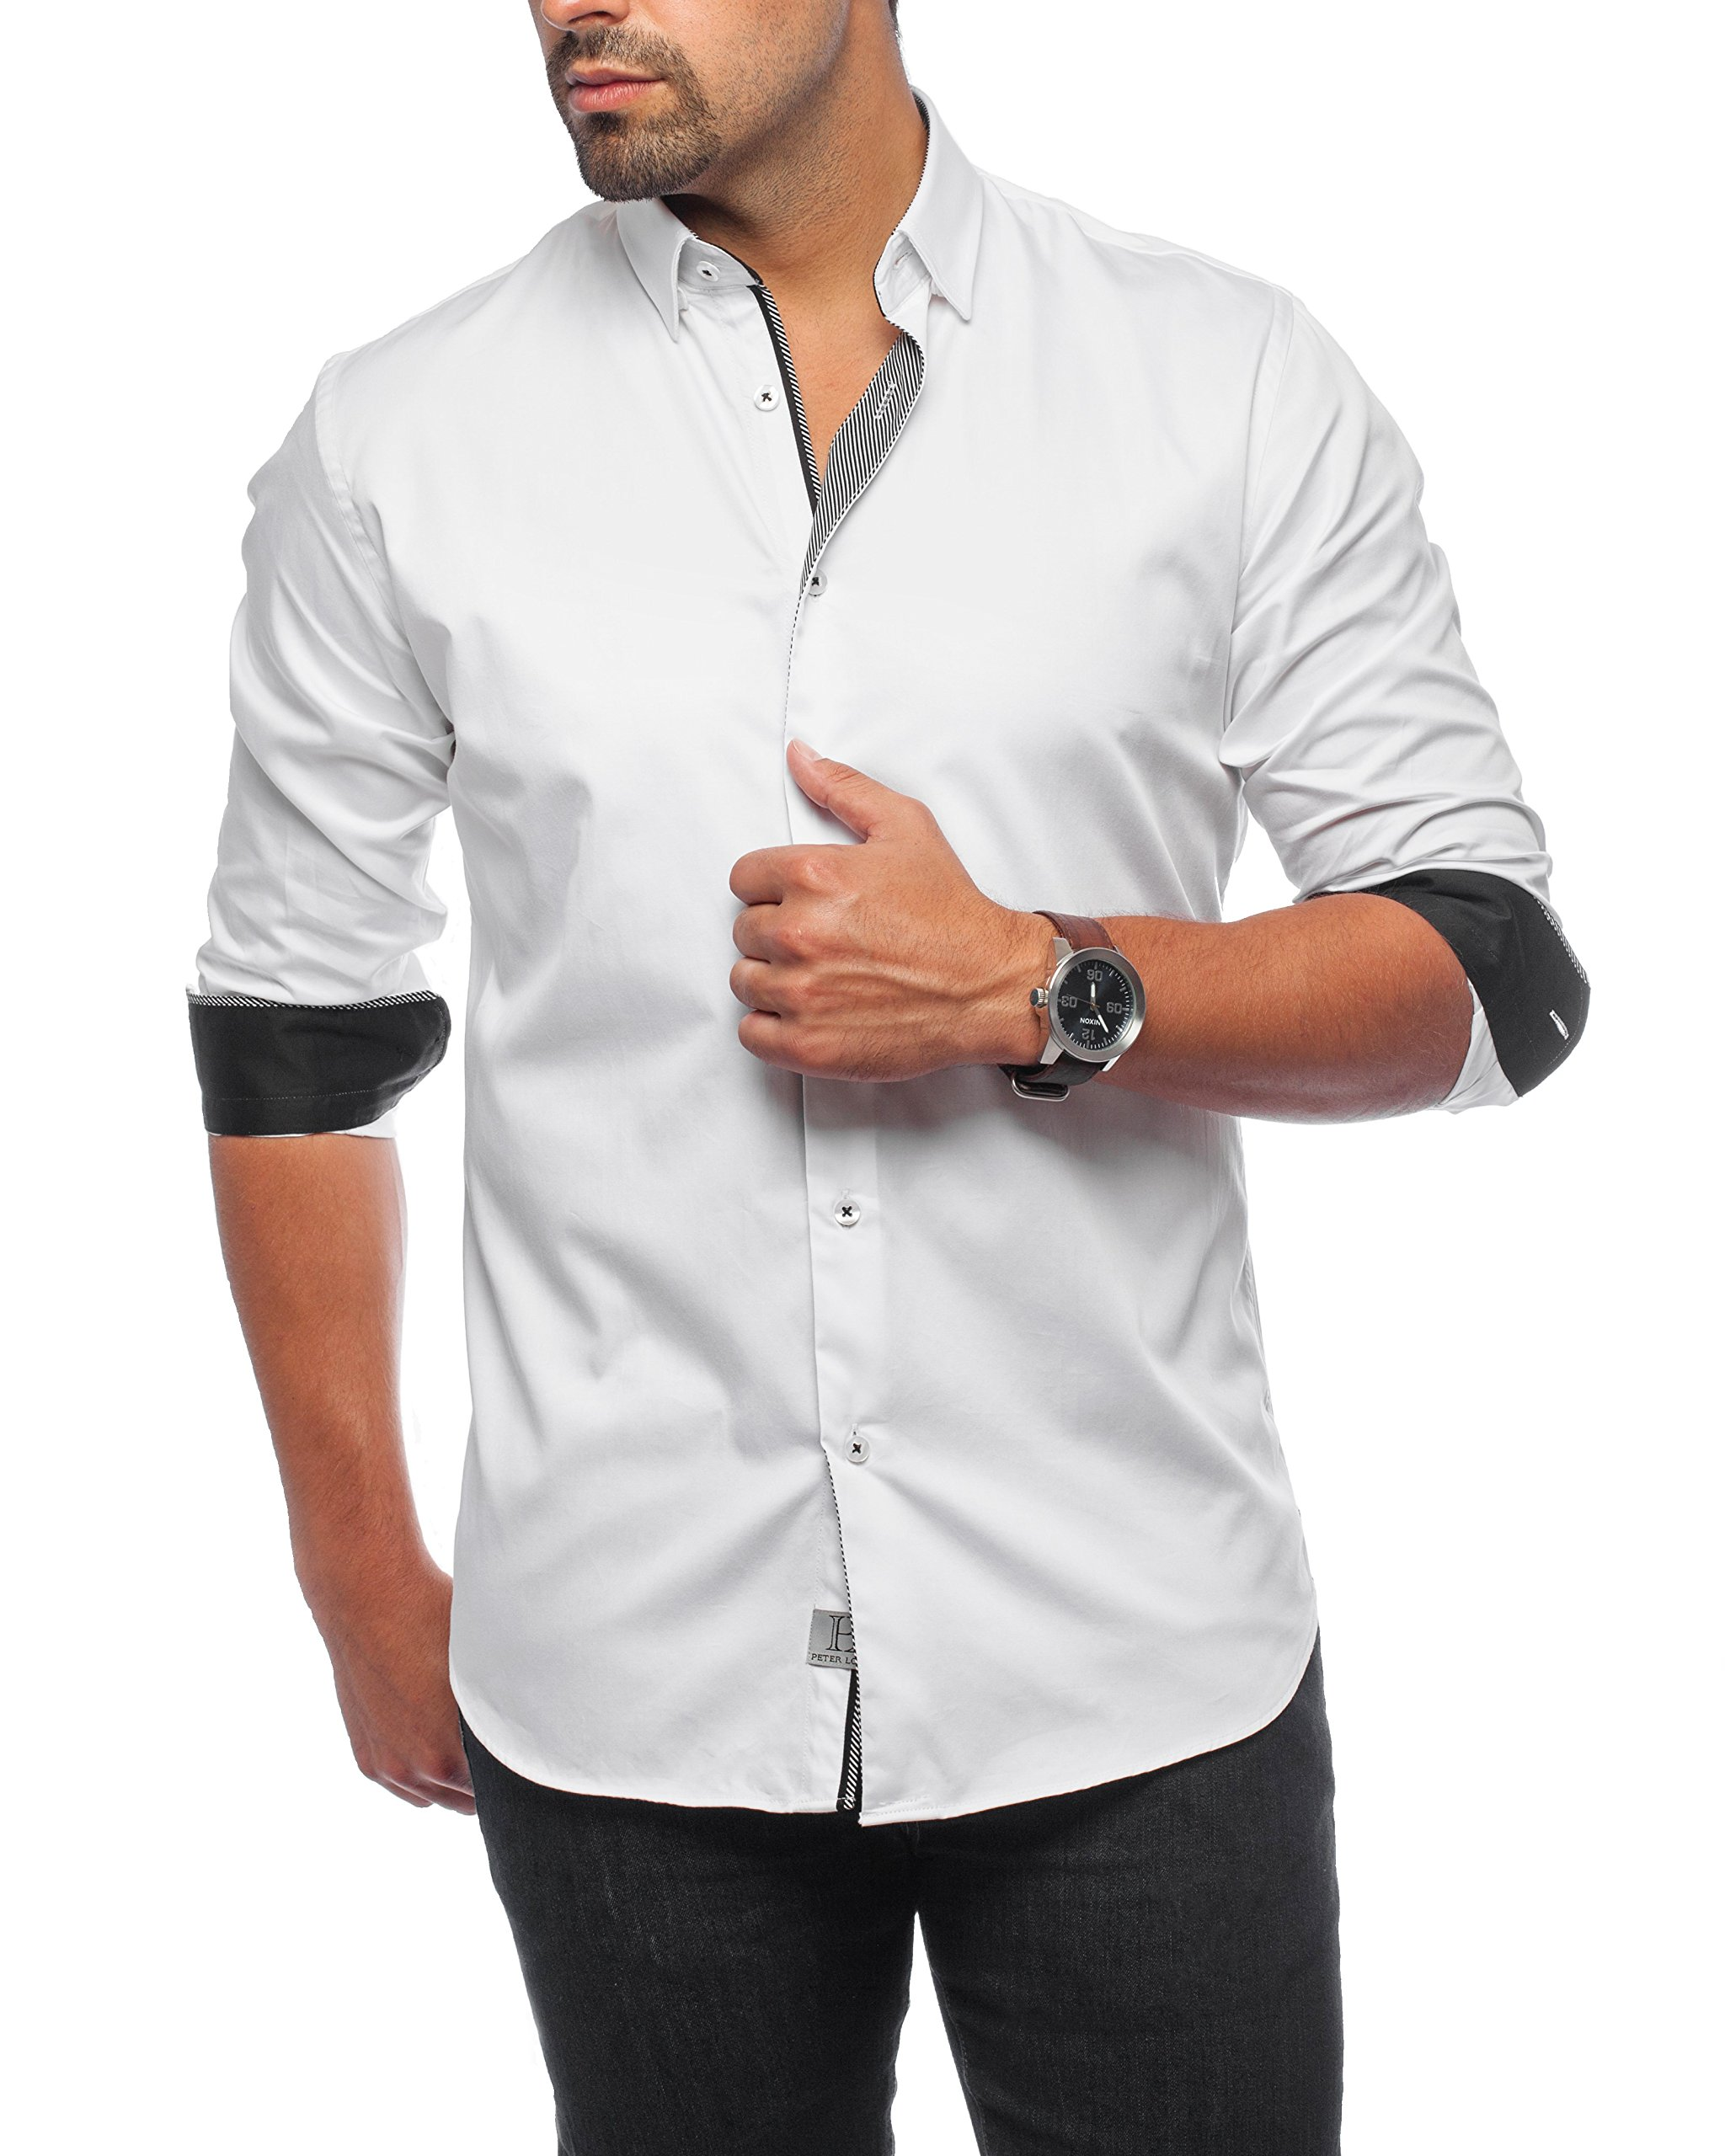 The Groomsman Shirt (Large) by Peter Louis